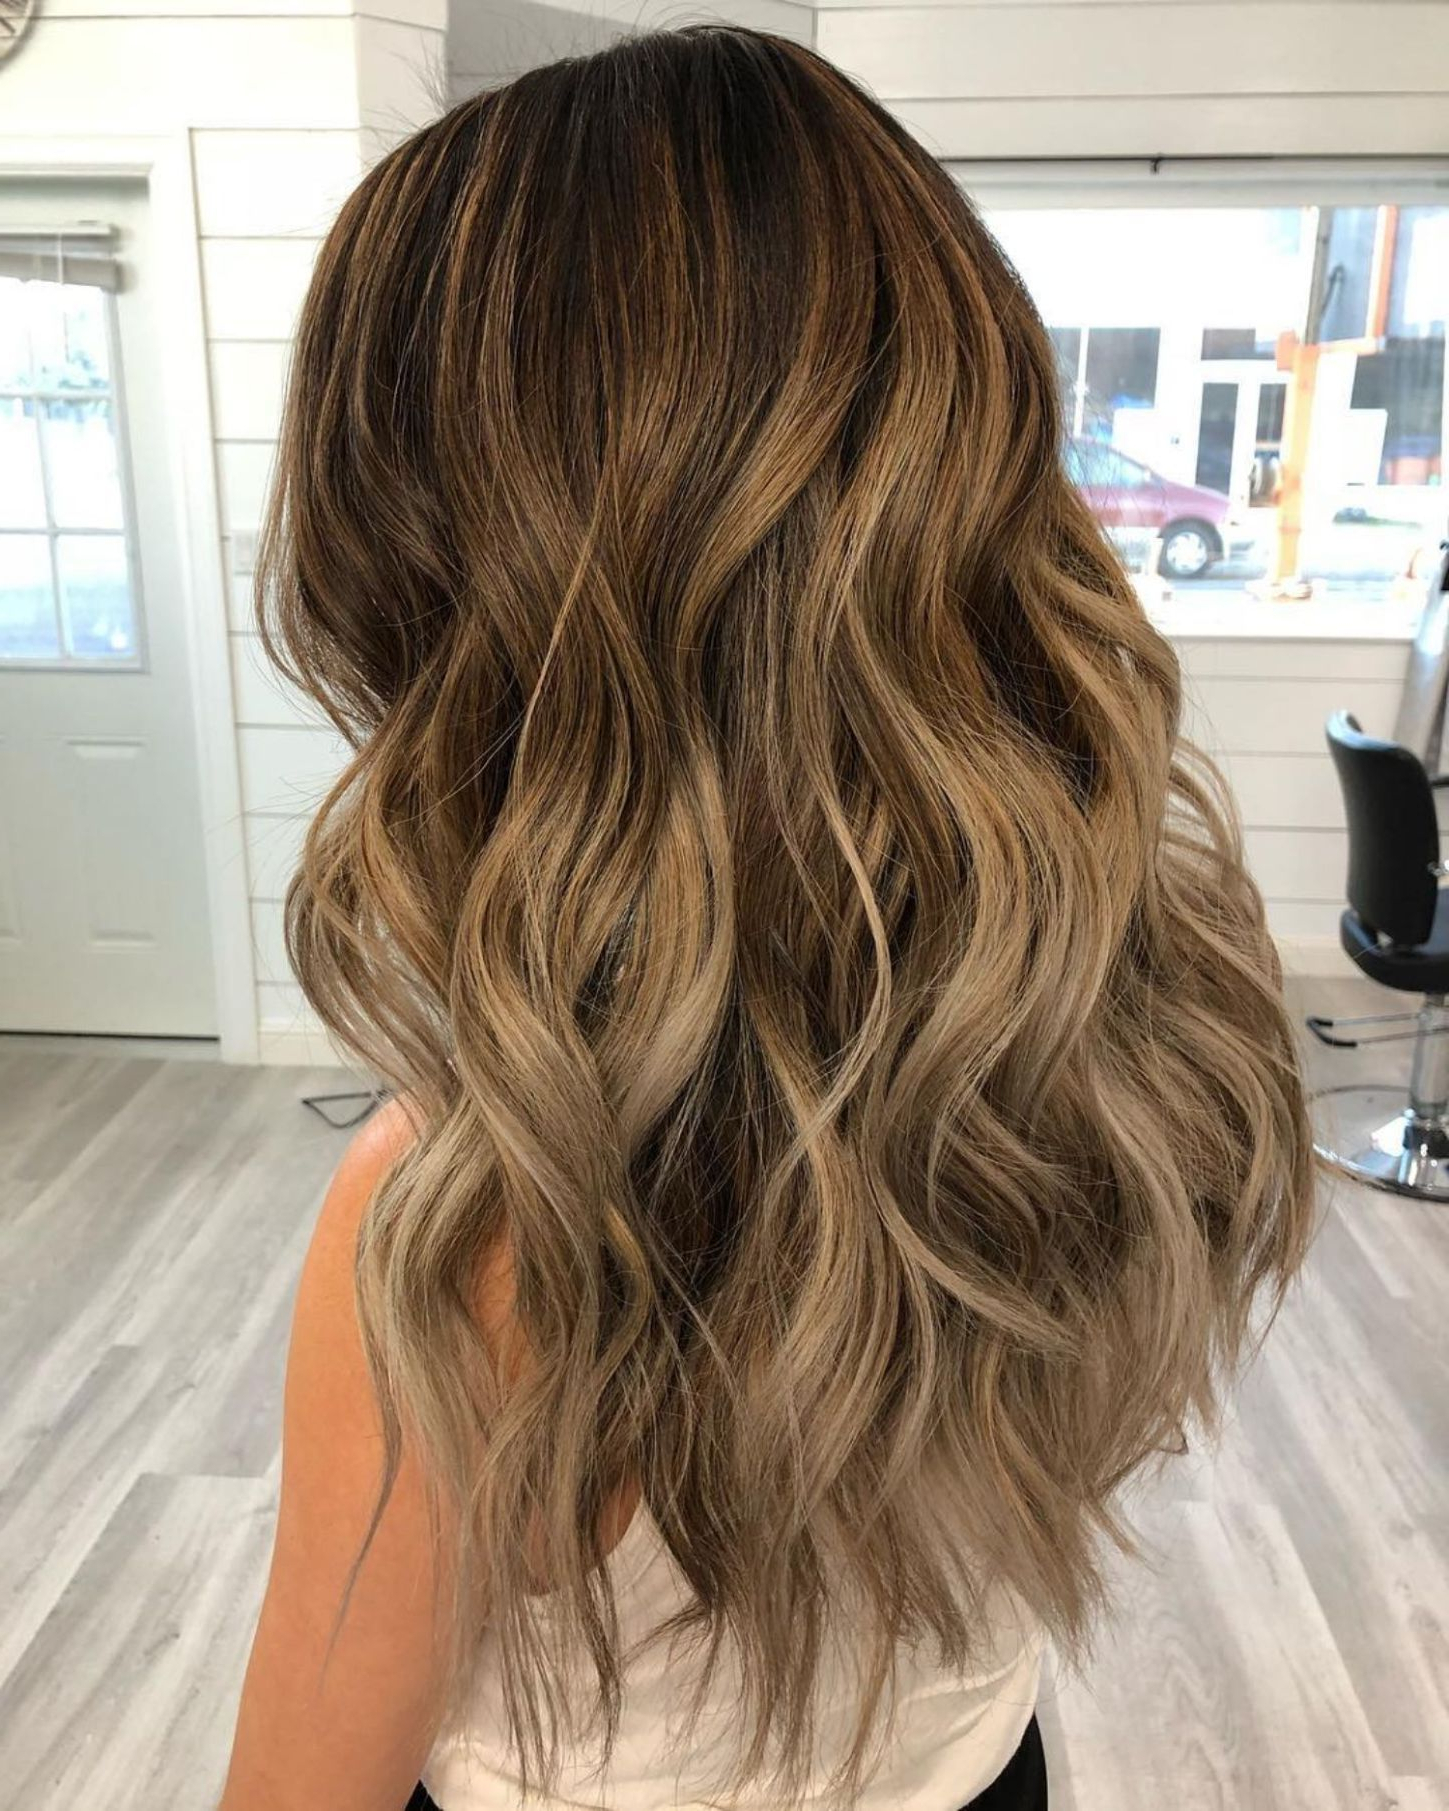 Best And Newest Long Wavy Layers Hairstyles Within 60 Most Magnetizing Hairstyles For Thick Wavy Hair (View 8 of 20)